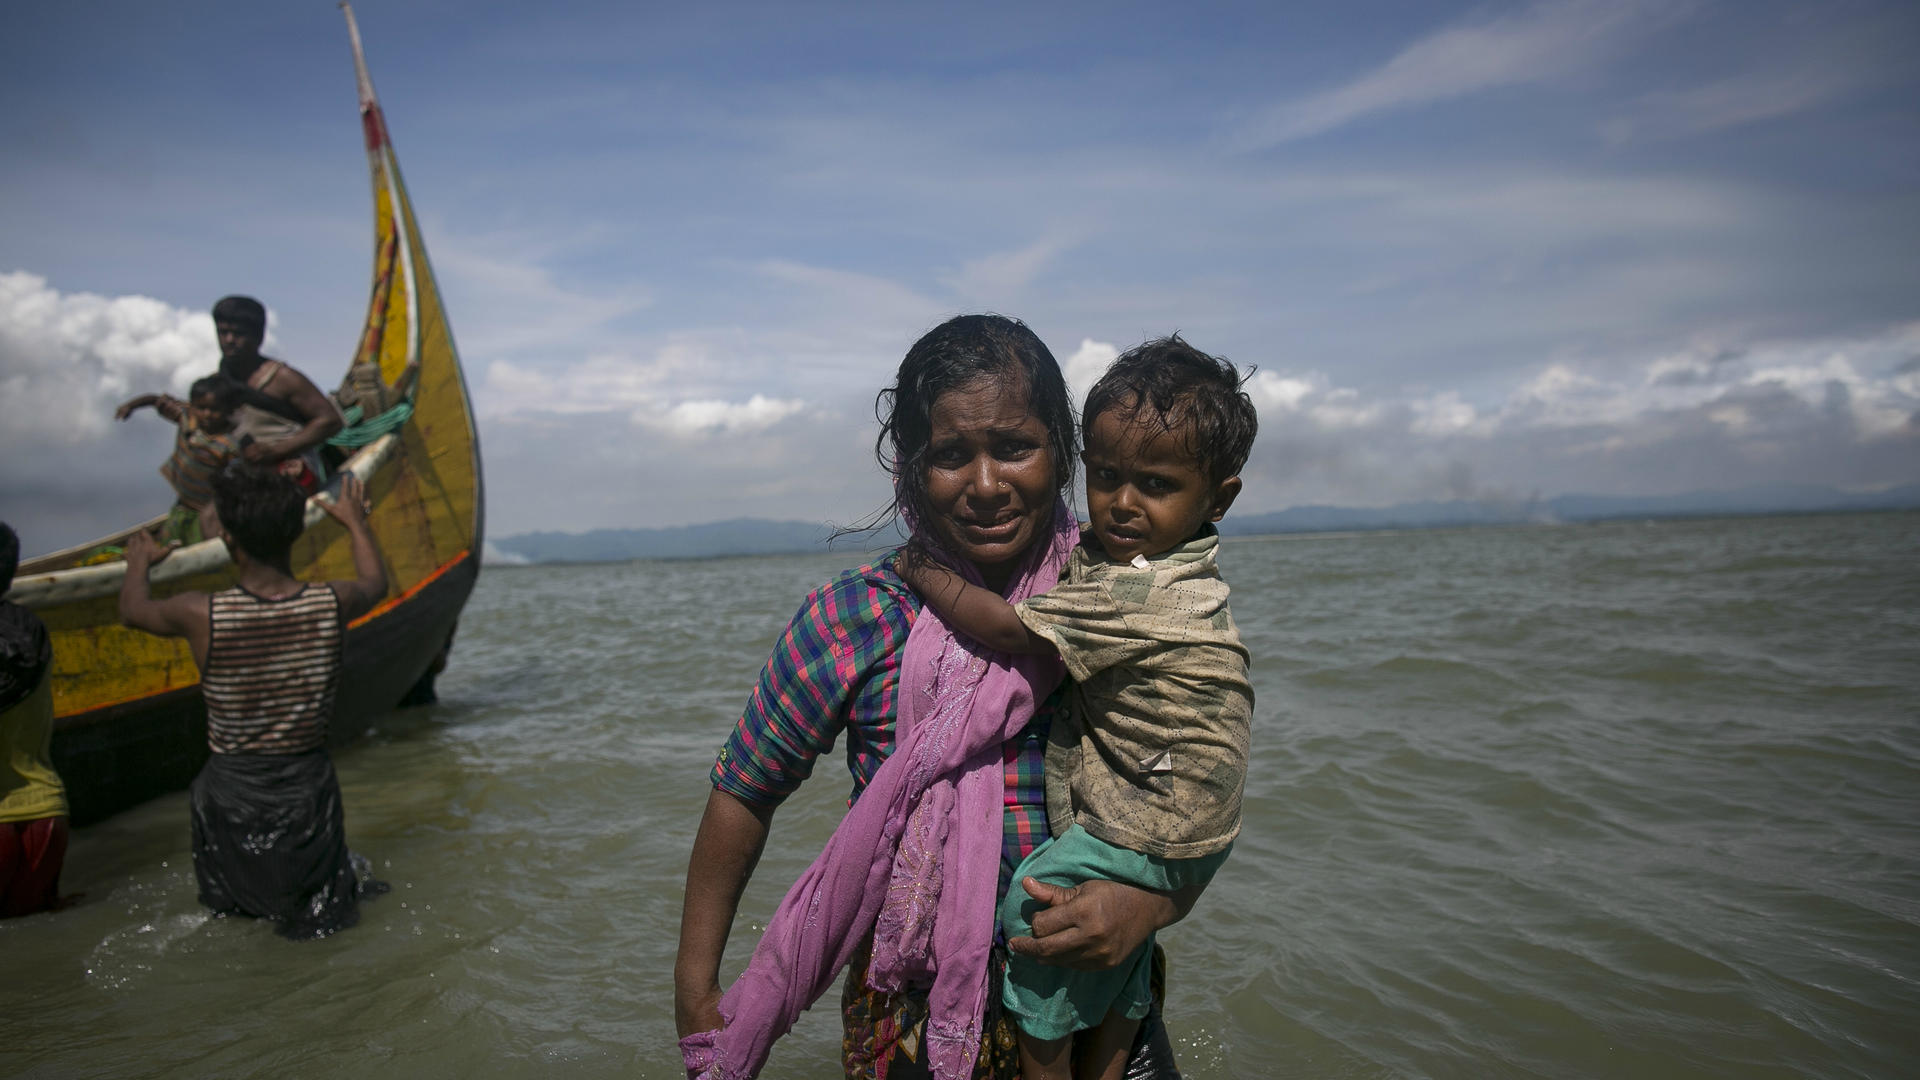 A Rohingya mother carries her child to shore after fleeing Myanmar's Rakhine State.